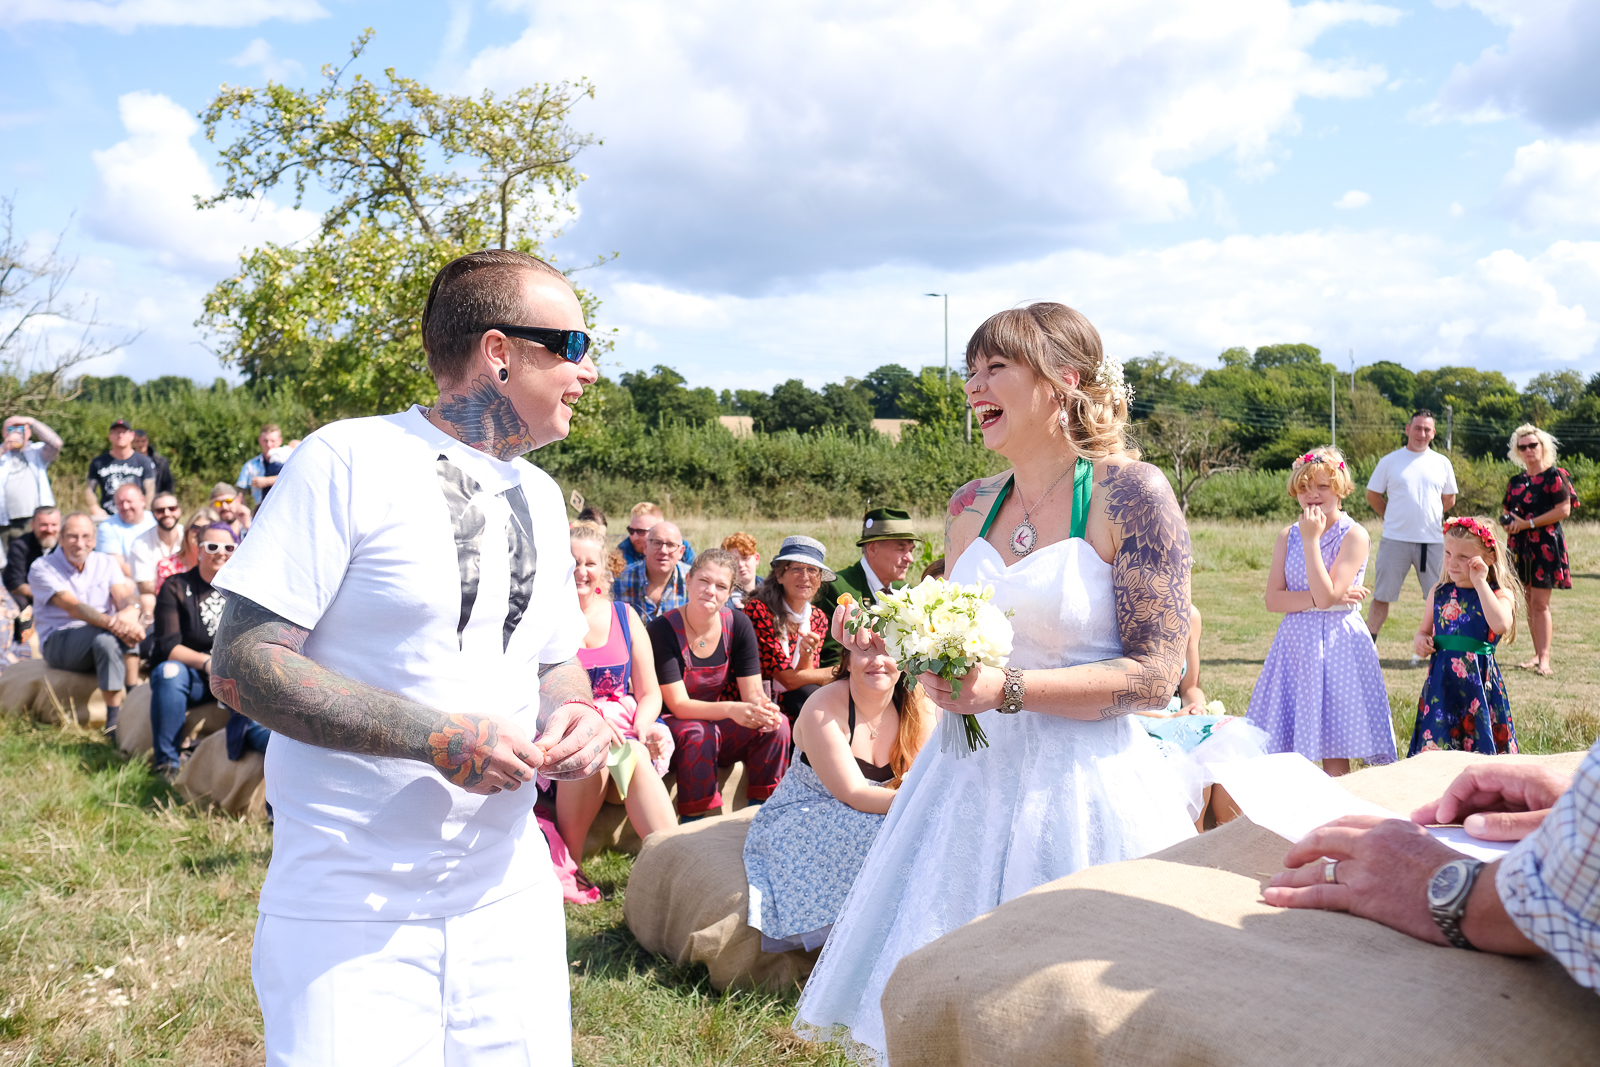 Bride and Groom laughing during their Festival Wedding ceremony in a field in Exmouth